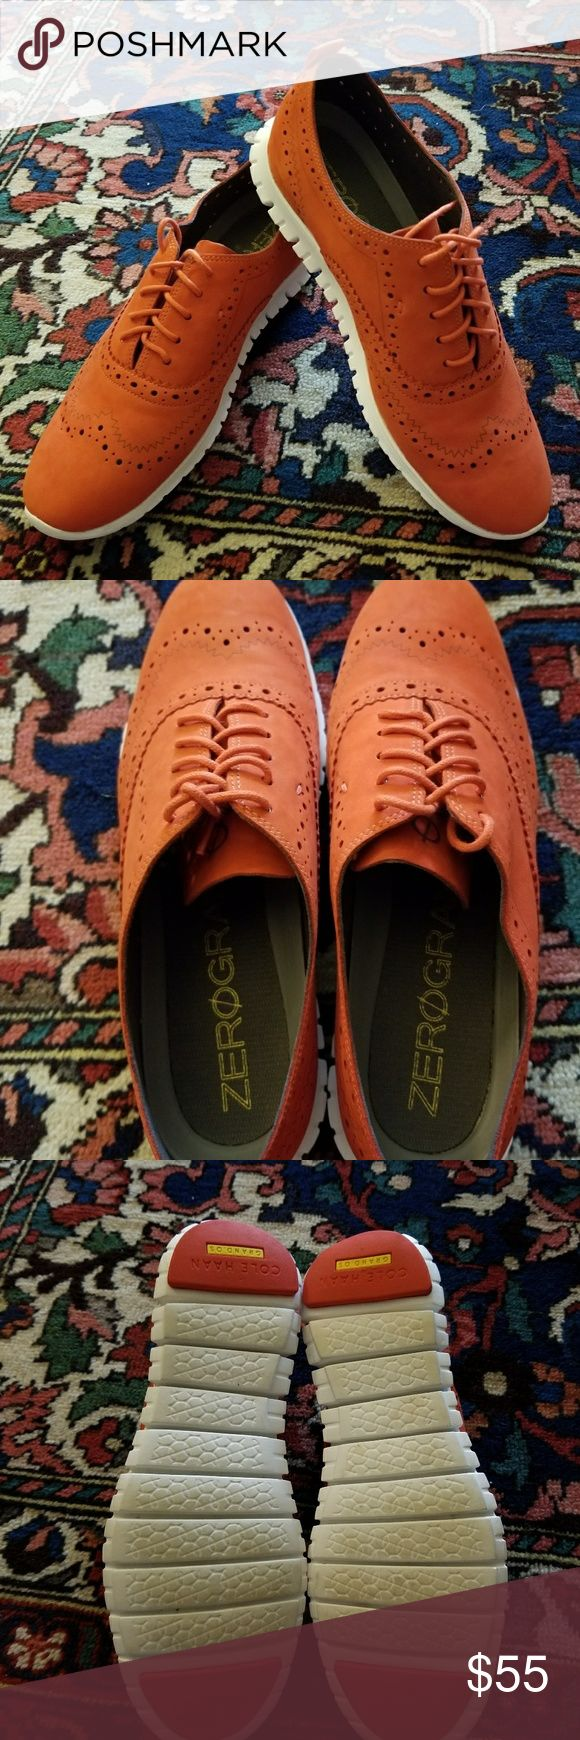 """COLE HAAN Zero Grand suede oxford COLE HAAN Zero Grand suede oxford size 7. Called """"citrus red"""" but looks like orange/coral color. Crafted from soft suede with laser-cut details, they feature rubber soles with Grand.OS technology that are carefully constructed with a focus on flexibility and reduced weight. Match with cuffed boyfriend jeans and a silk blouse for off-duty wear or a skirt and button-down for an unexpected twist to business attire. Beautiful accent to any outfit, in EUC…"""